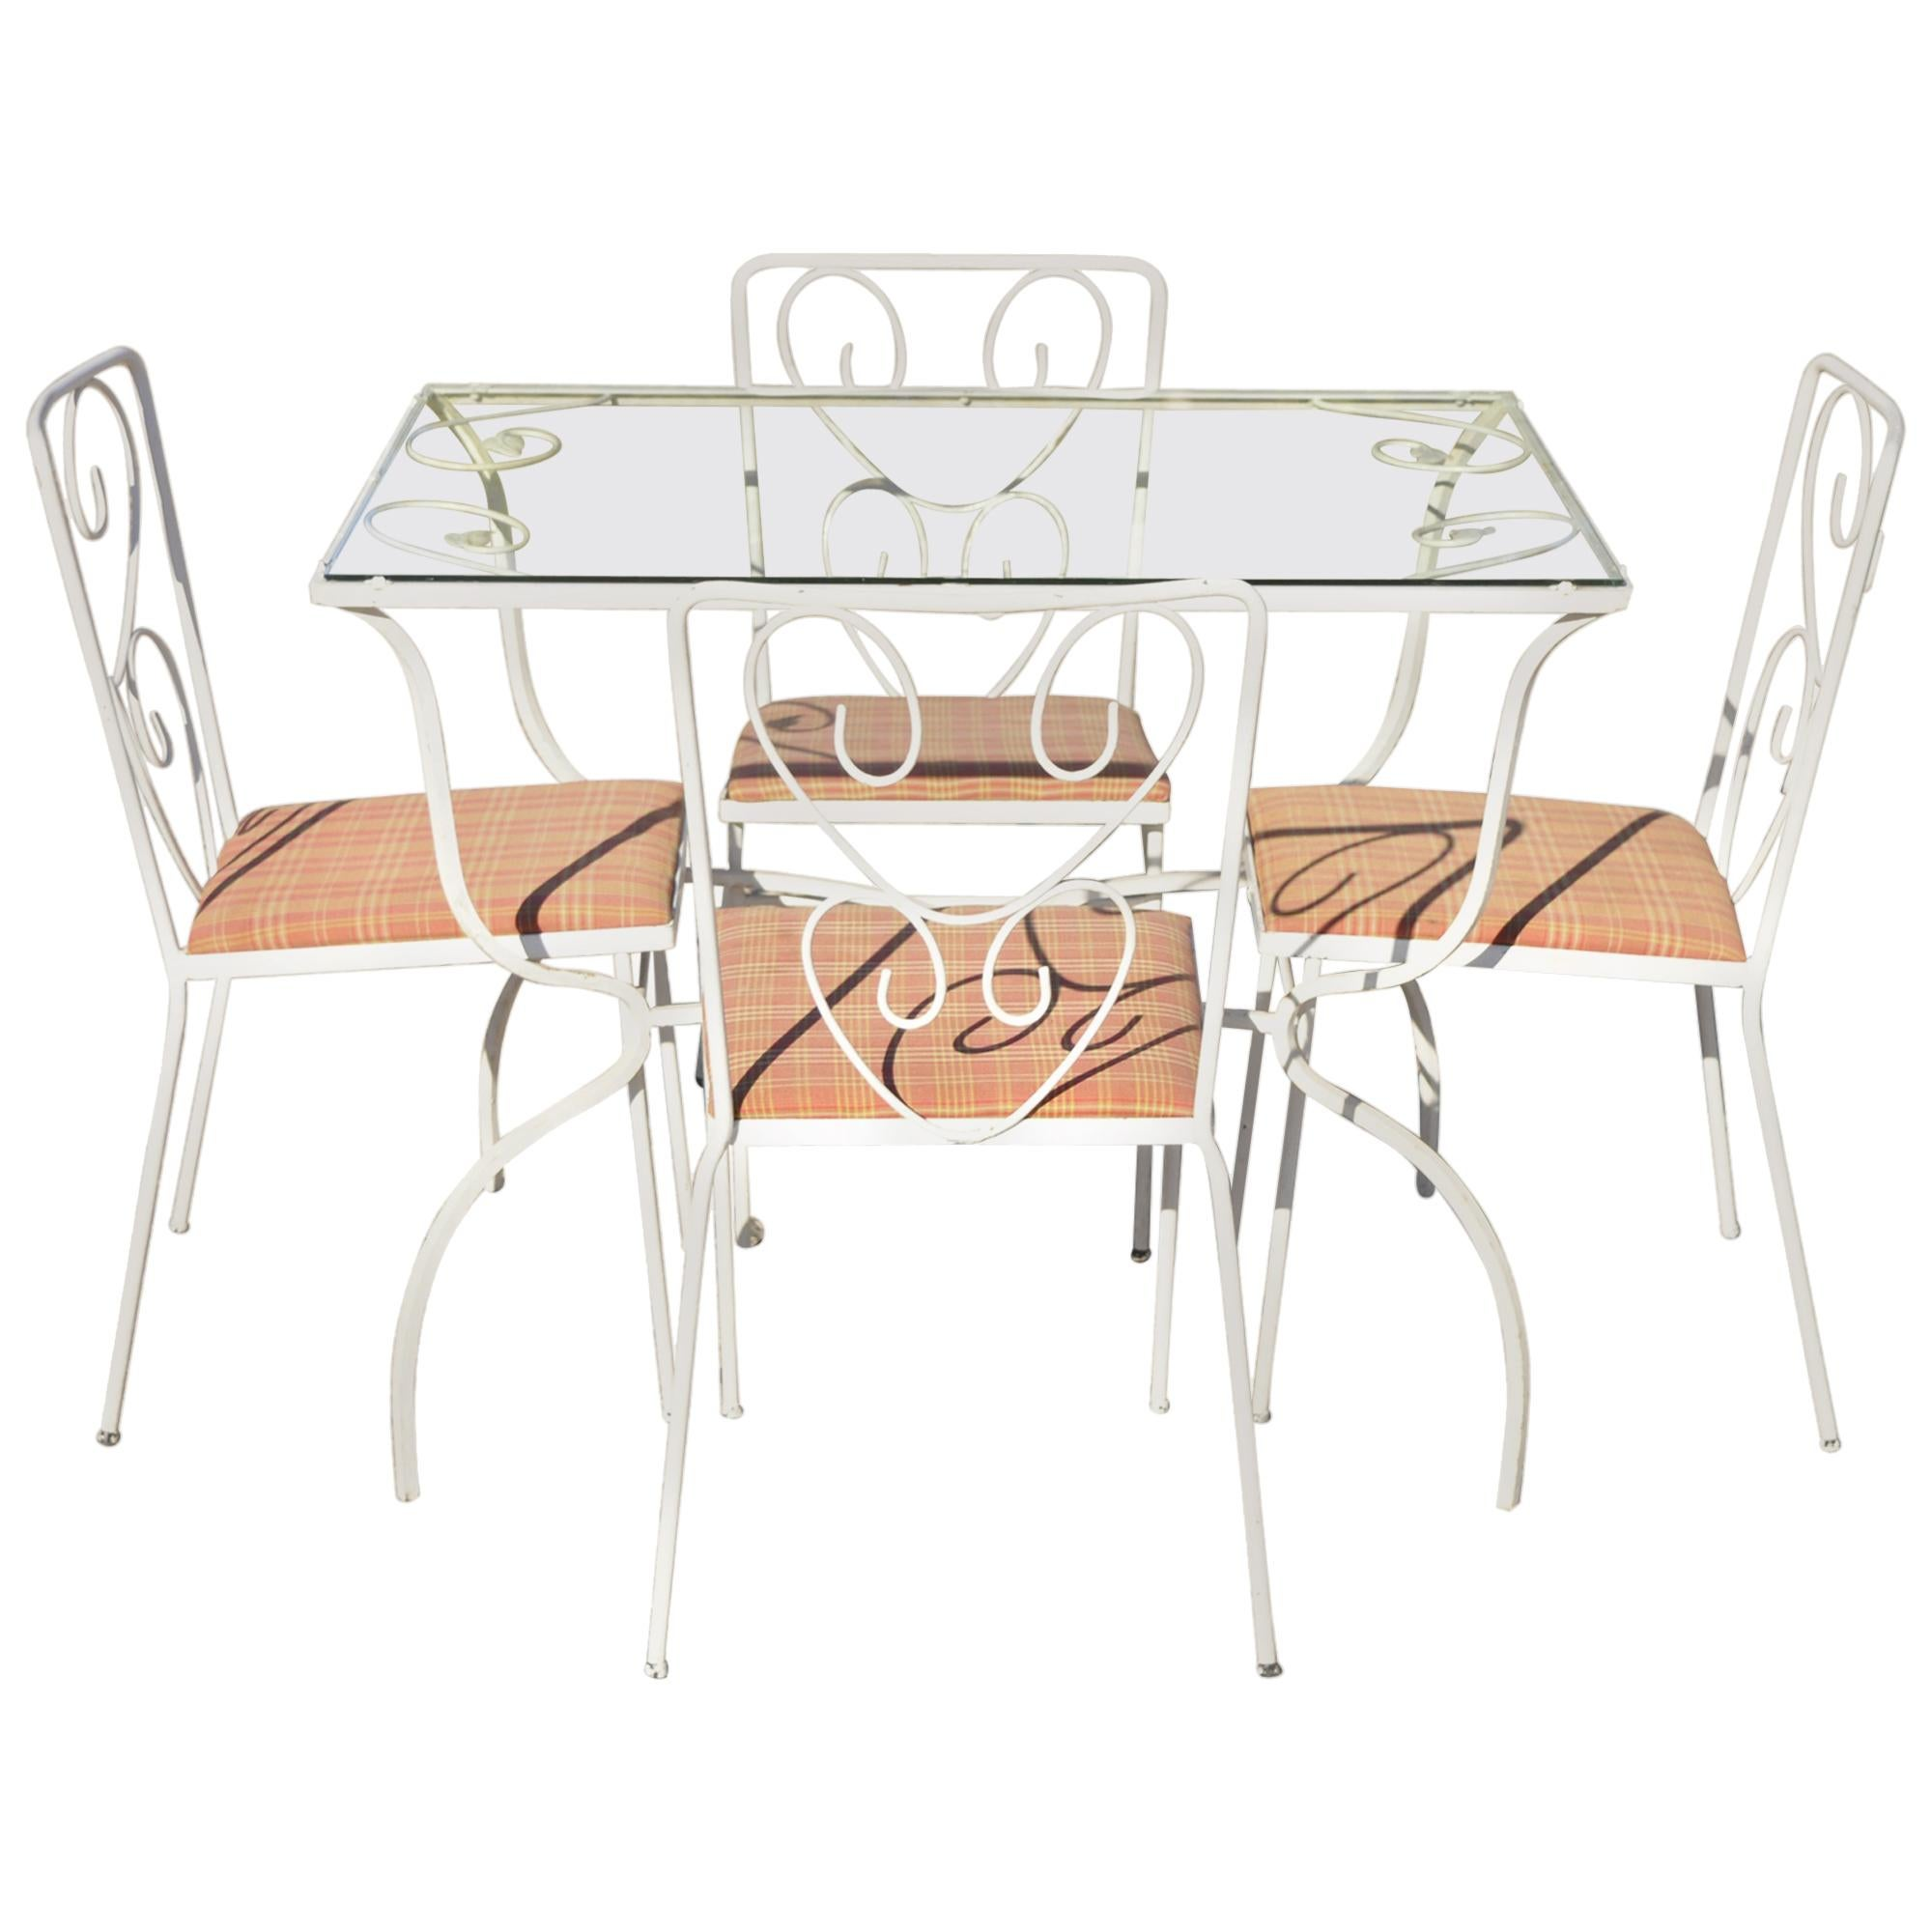 Vintage French Victorian Wrought Iron Flower Garden Patio Dining Set, 5pc Set